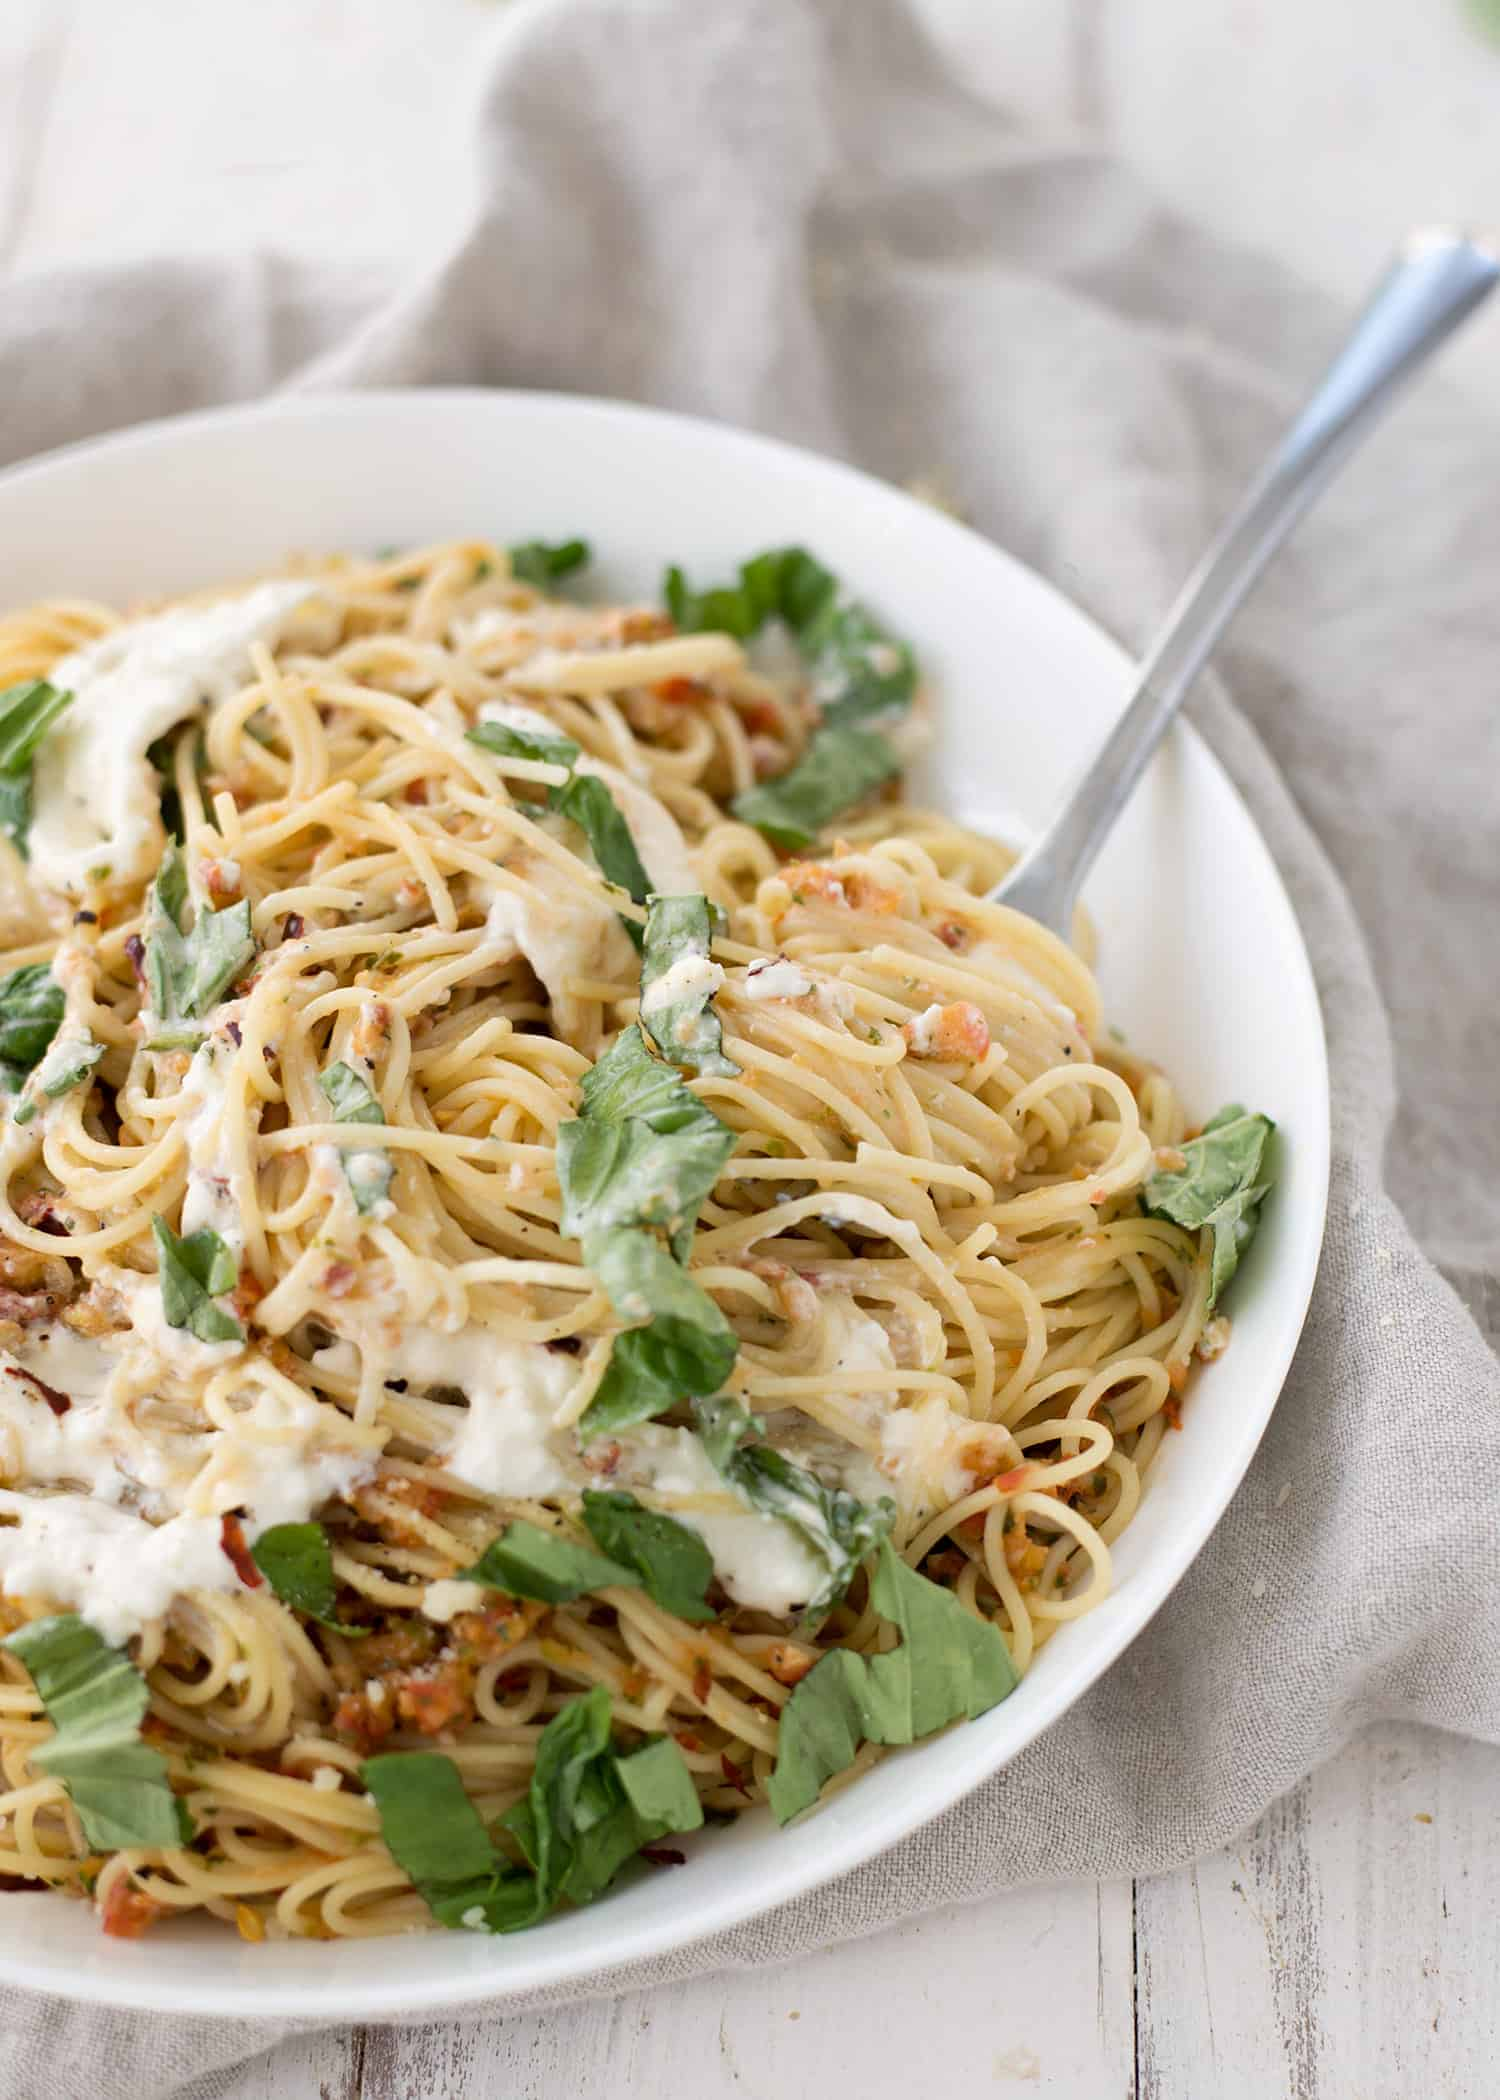 Pasta Checca with Burrata! This recipe is ready in less than 20 minutes. Quick, no-cook sauce tossed with hot angelhair pasta and topped with creamy burrata. Vegetarian. | www.delishknowledge.com